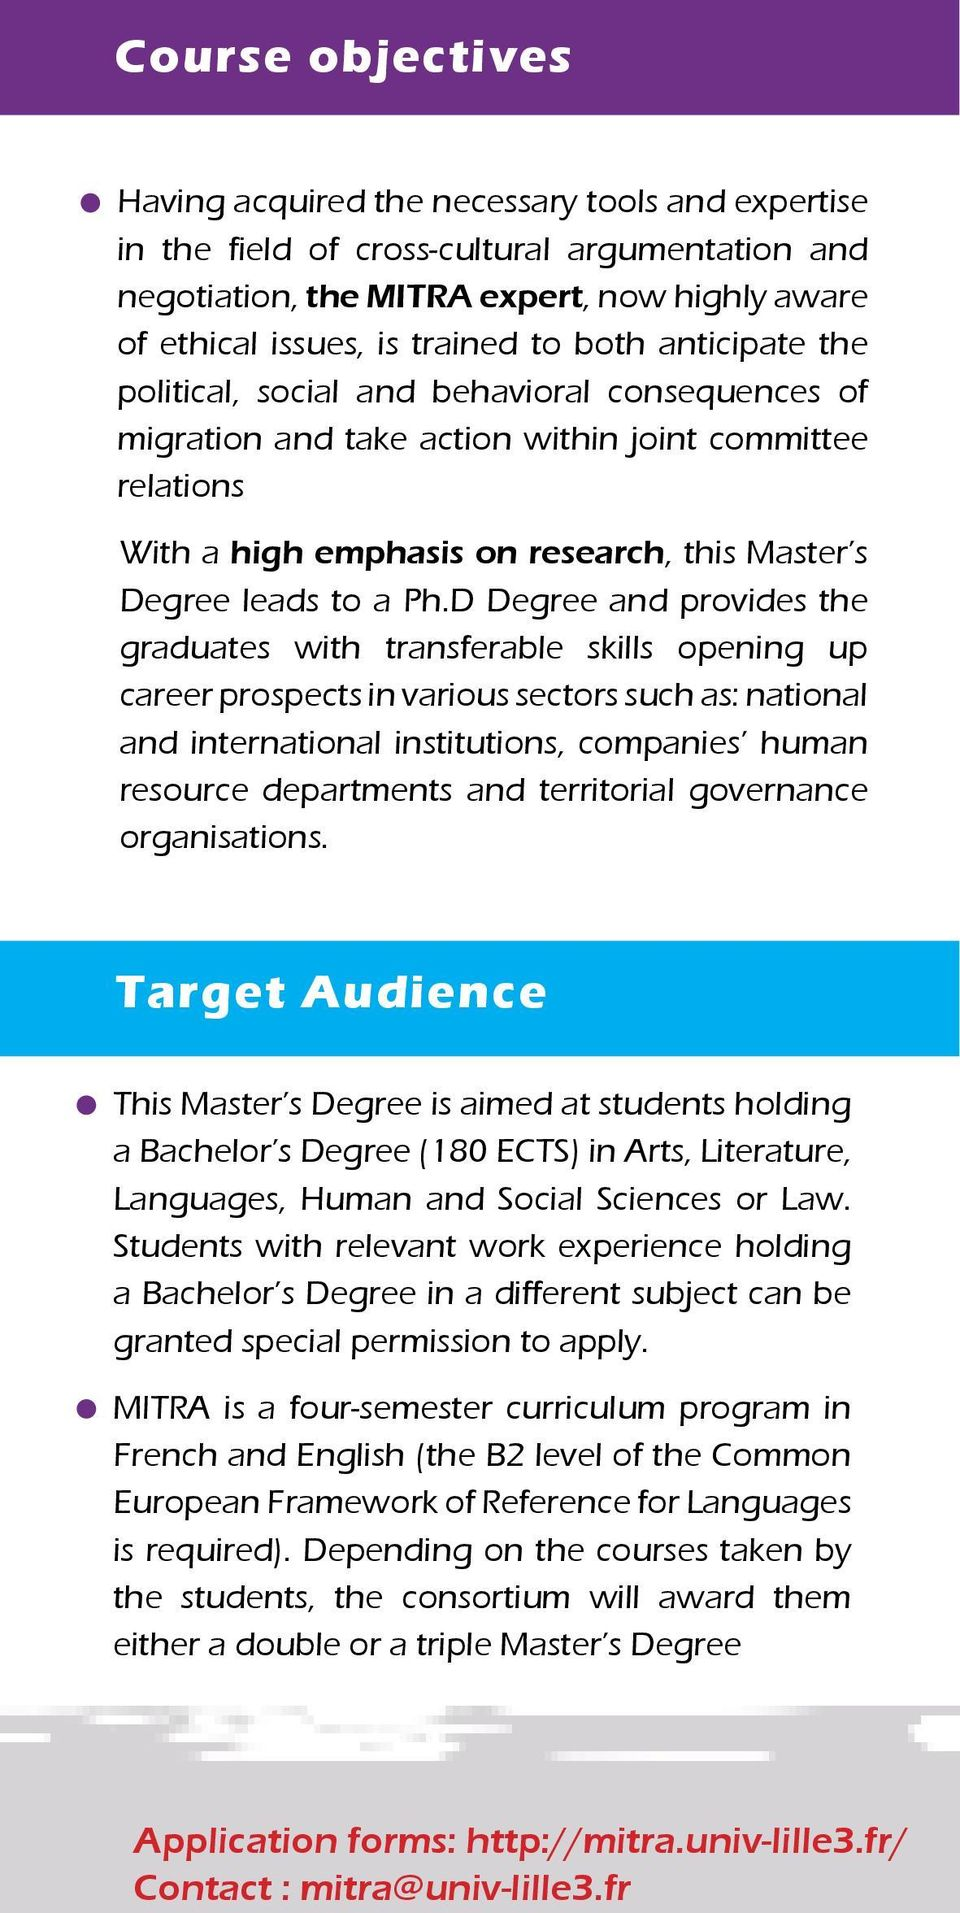 D Degree and provides the graduates with transferable skills opening up career prospects in various sectors such as: national and international institutions, companies human resource departments and